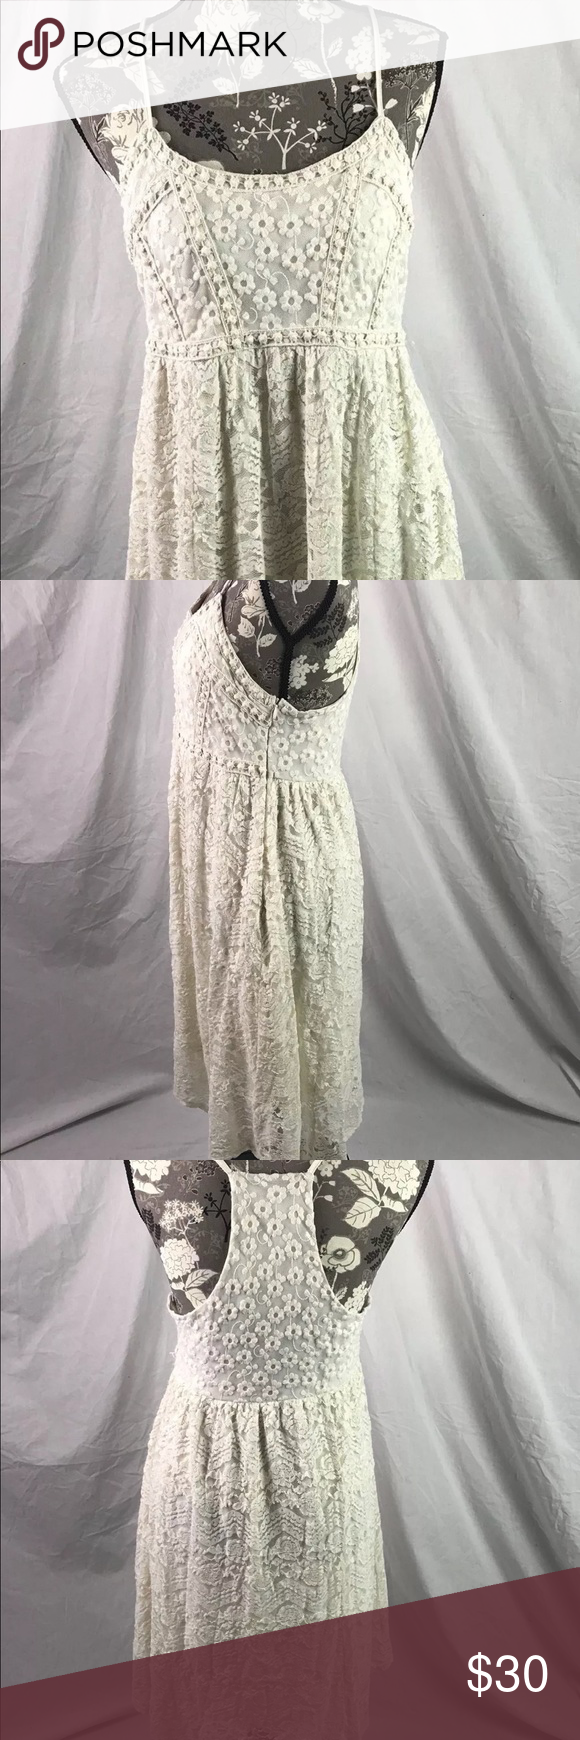 """Maurice's white lace overlay summer dress Maurice's women's lace overlay summer dress size Large. Adjustable spaghetti straps. Side zip closure.   Minimal wear.  Measures: 18"""" across chest  40"""" shoulder to hem Maurices Dresses Midi"""